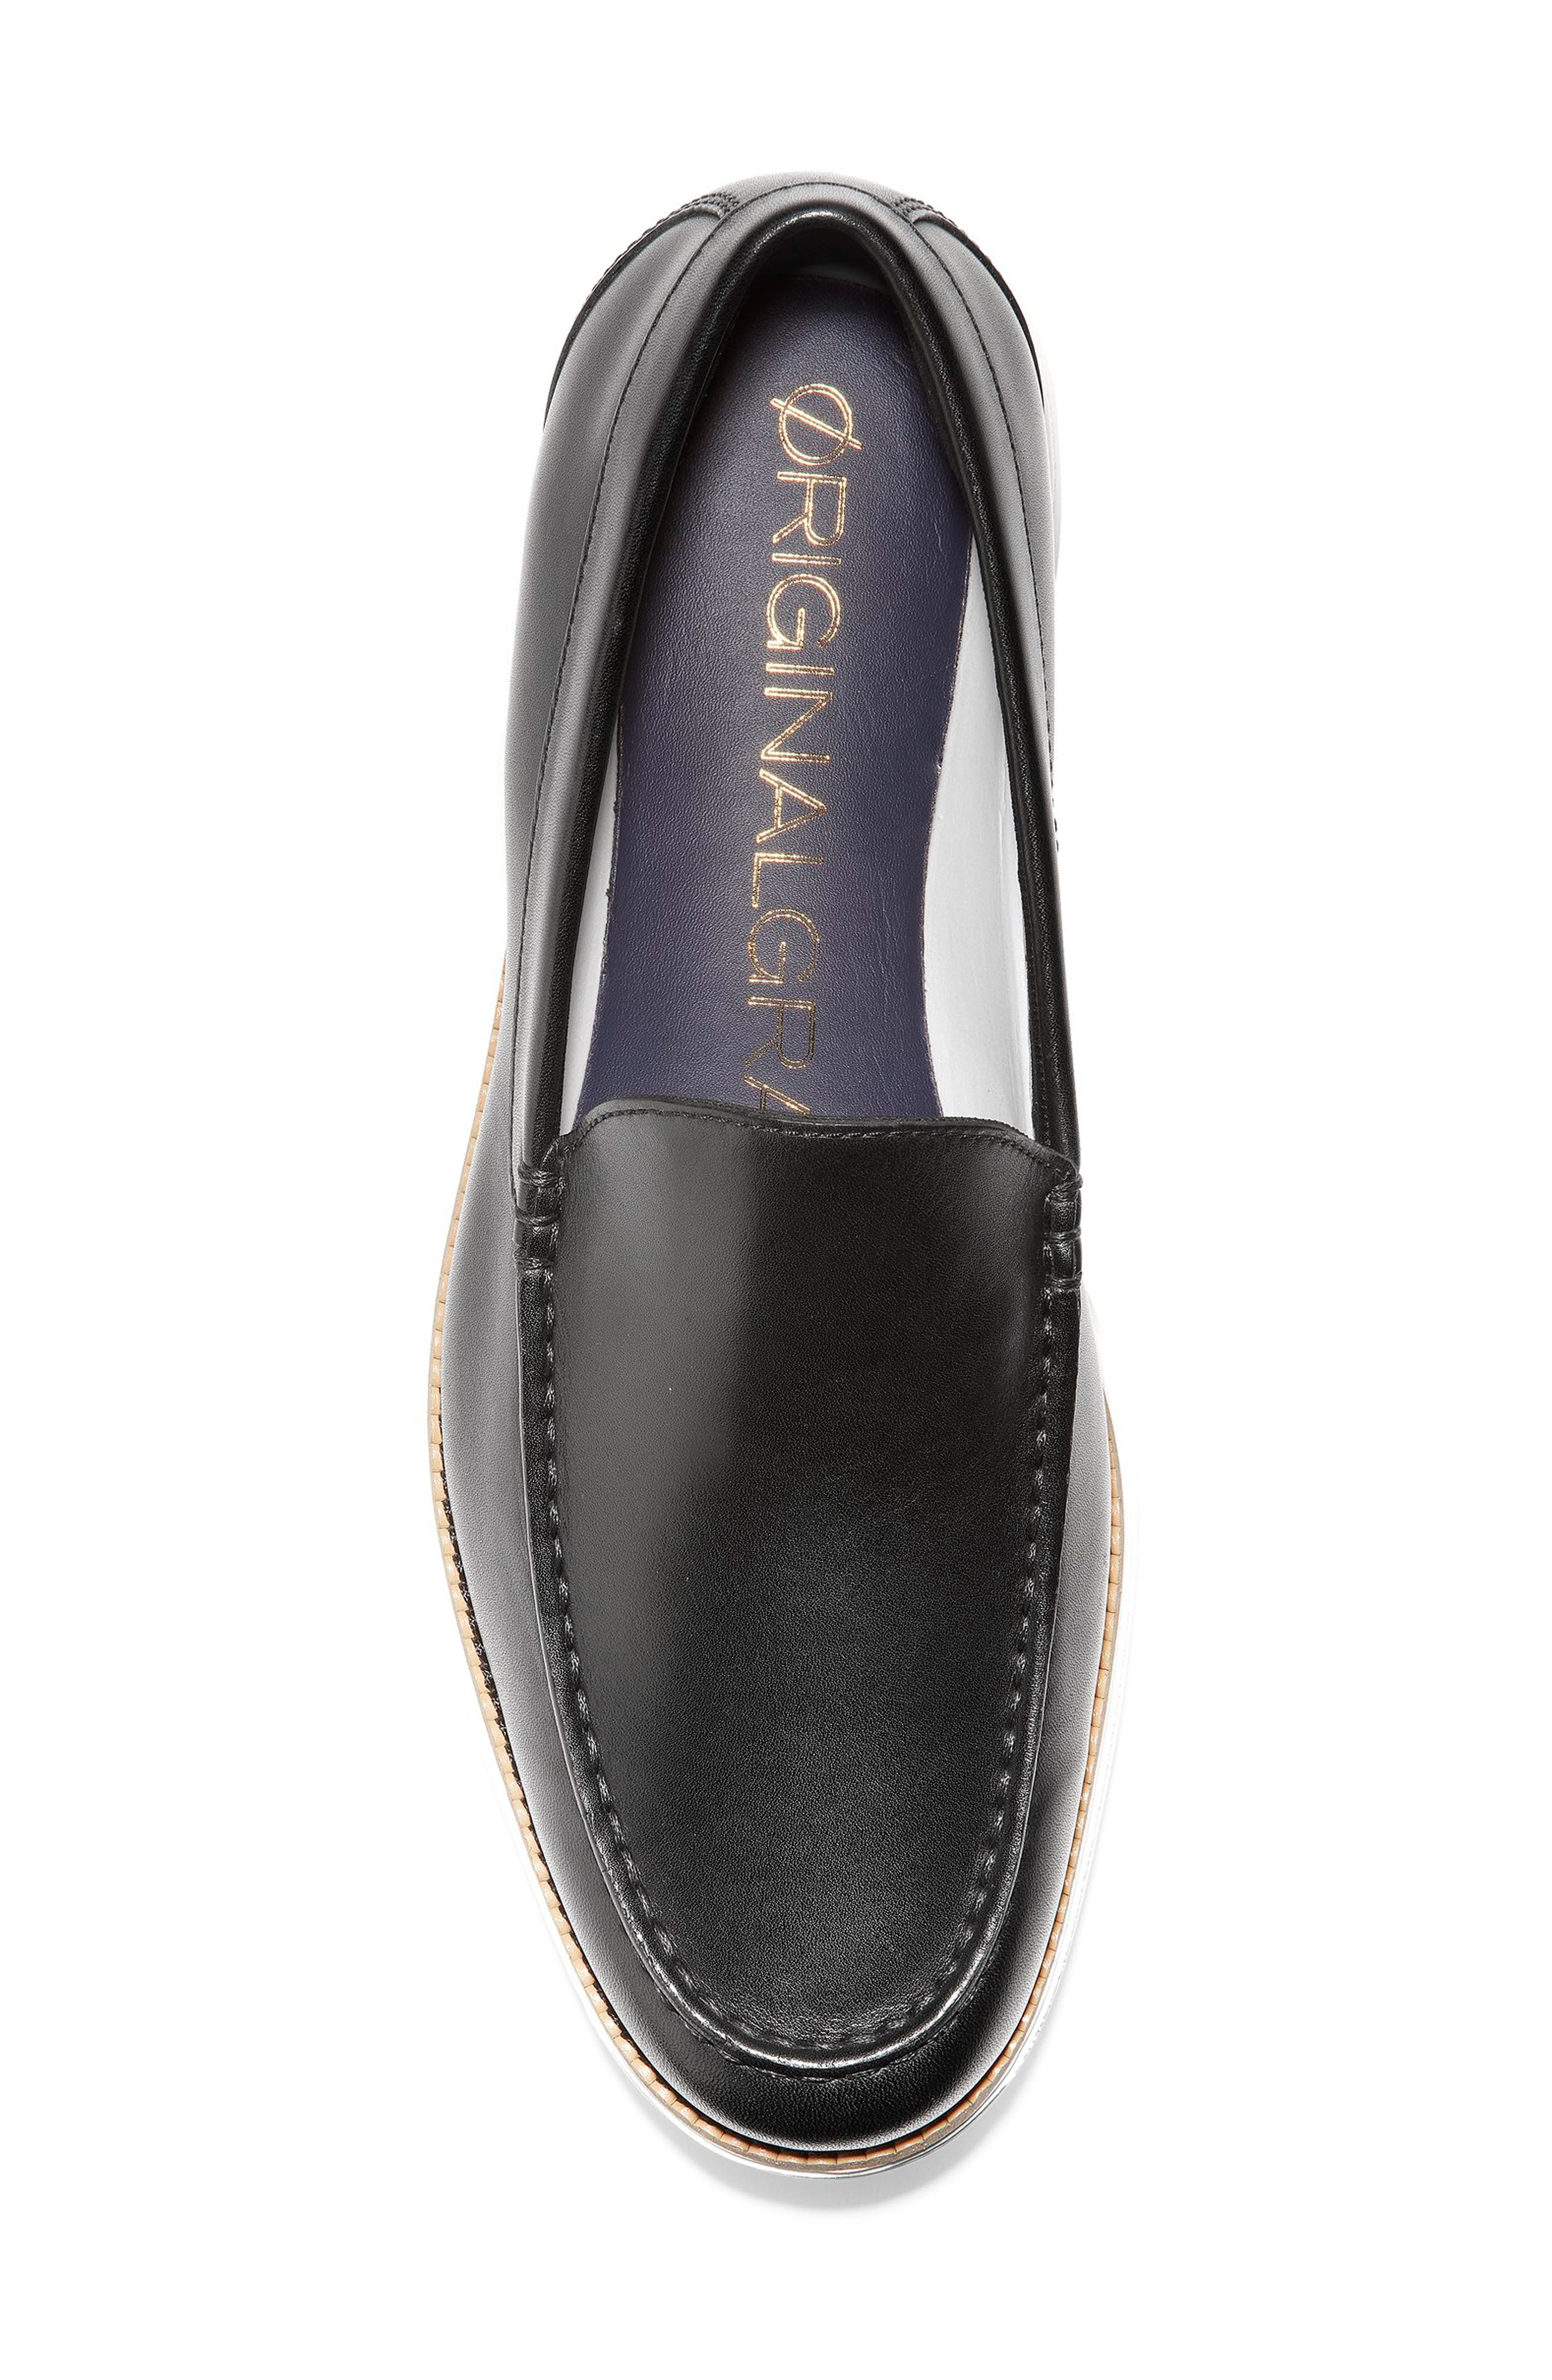 COLE HAAN, Original Grand Loafer, Alternate thumbnail 5, color, BLACK/ OPTIC WHITE LEATHER